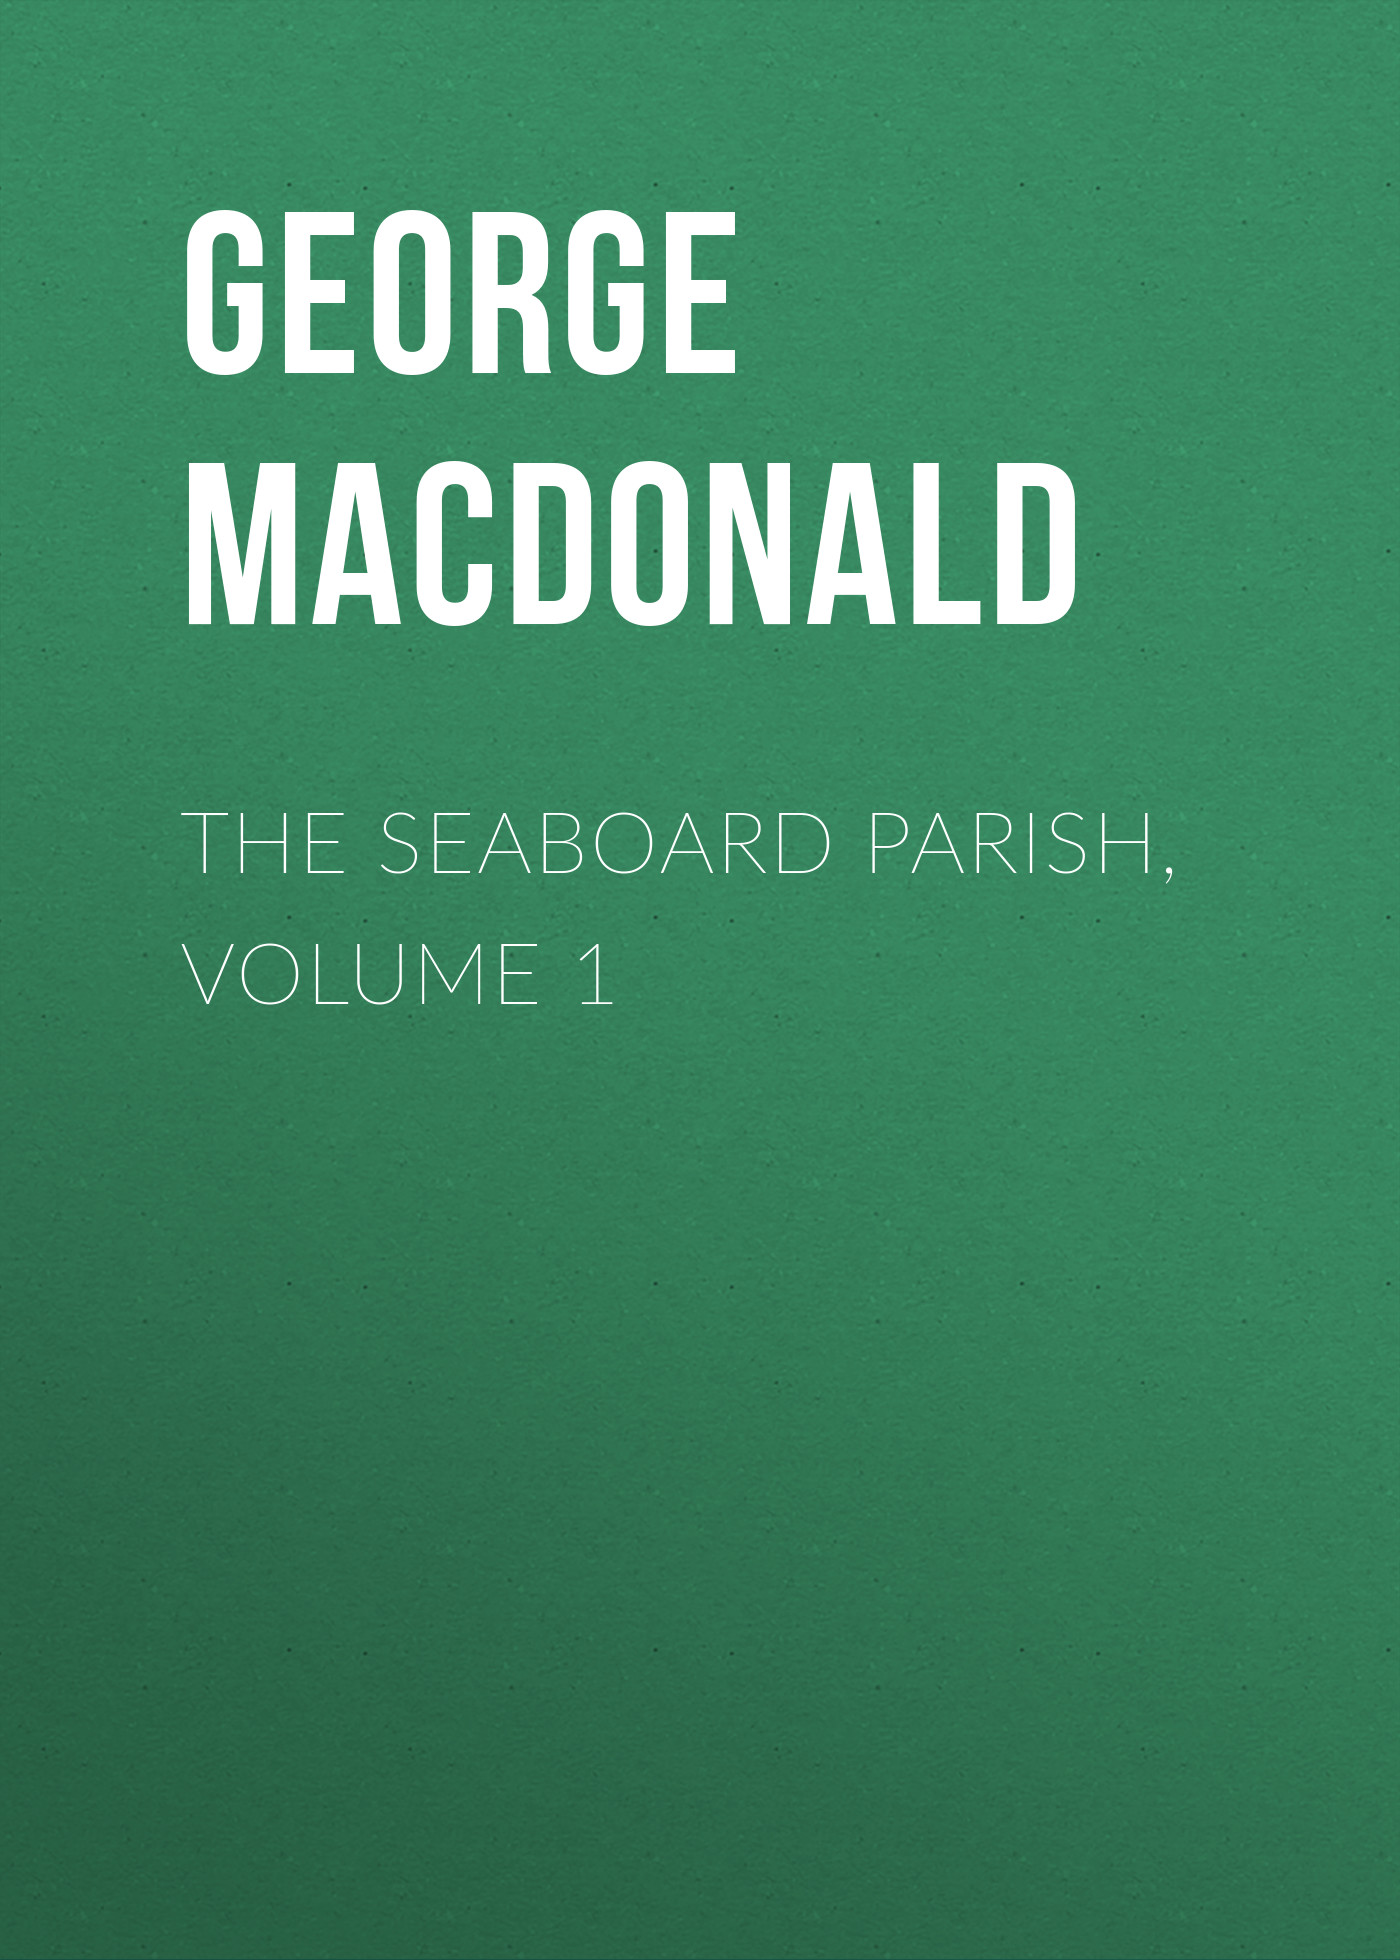 George MacDonald The Seaboard Parish, Volume 1 george macdonald the poetical works of george macdonald in two volumes volume 1